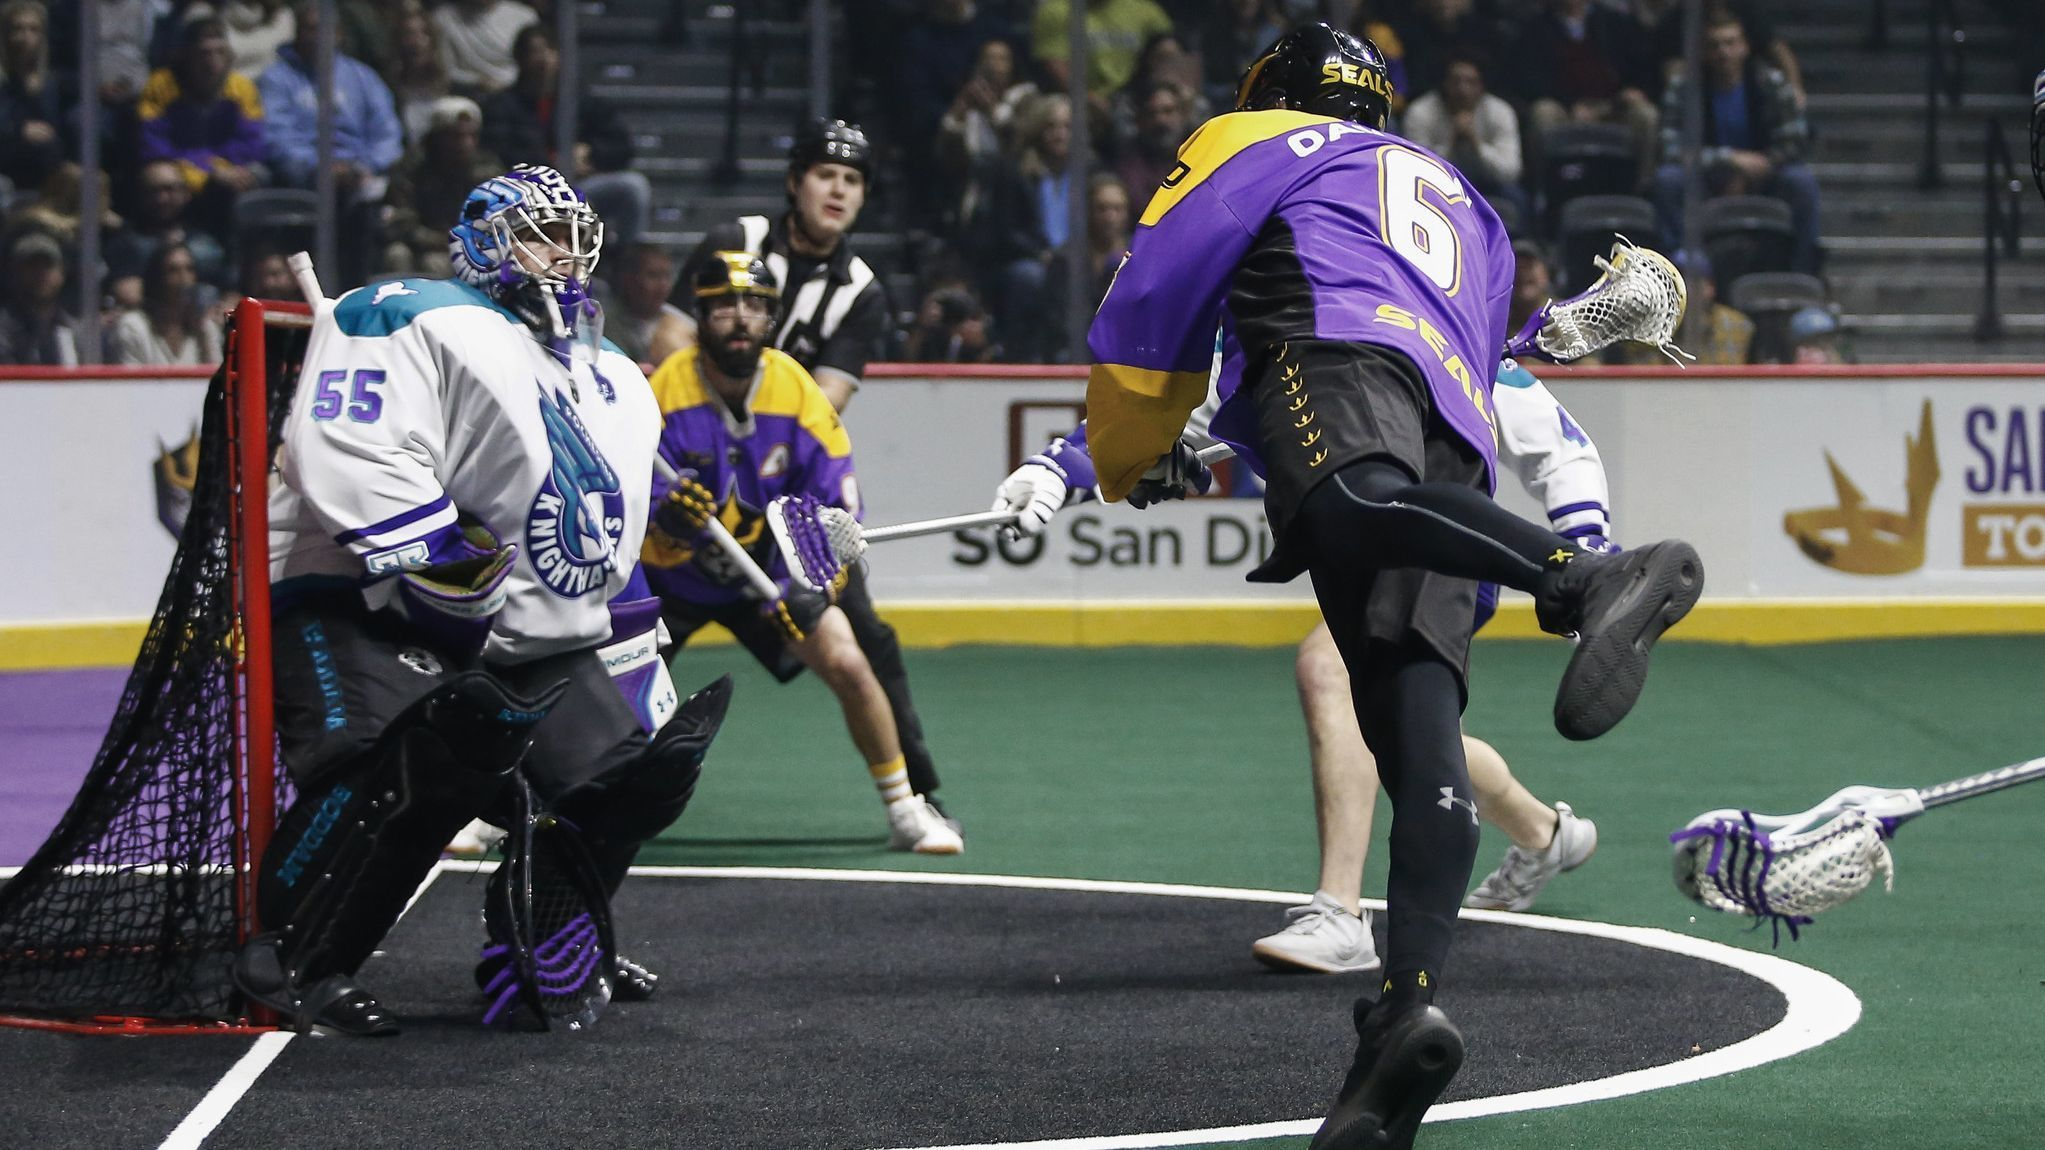 Big crowd watches LAX Seals score dramatic win in their inaugural home game